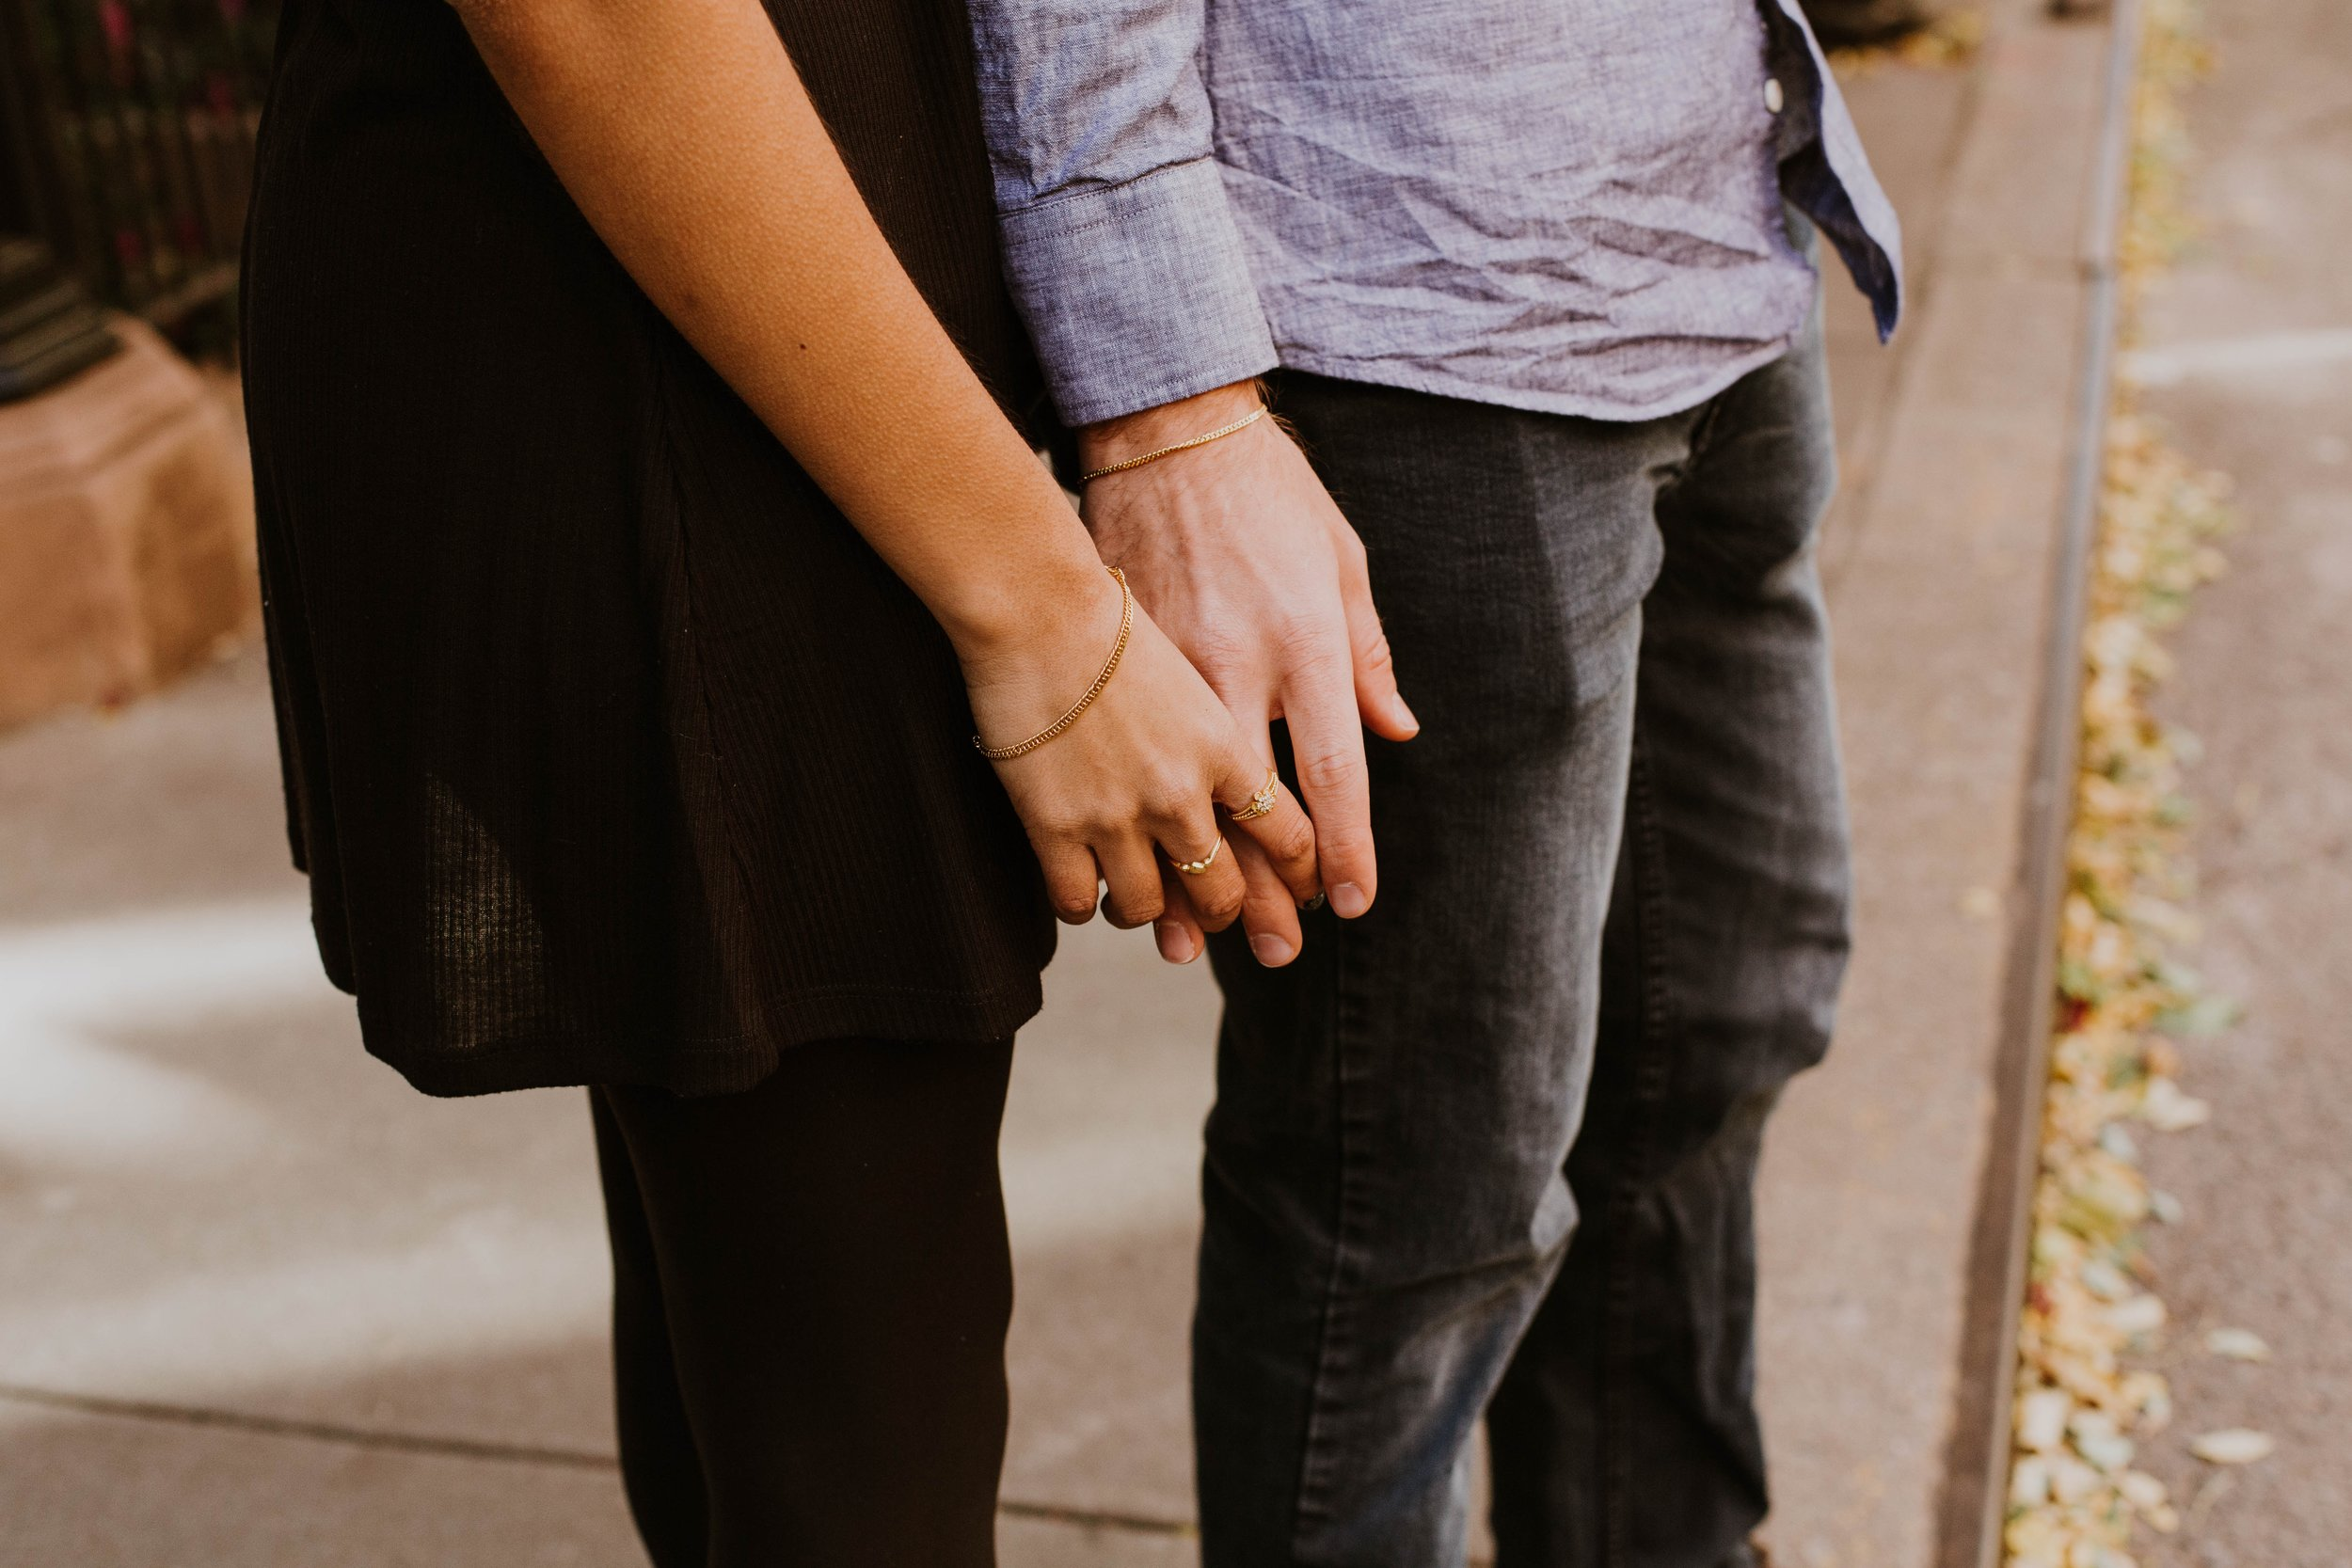 THE MARRIAGE PREPARATION COURSE - STARTS: 18 SEPt 2019